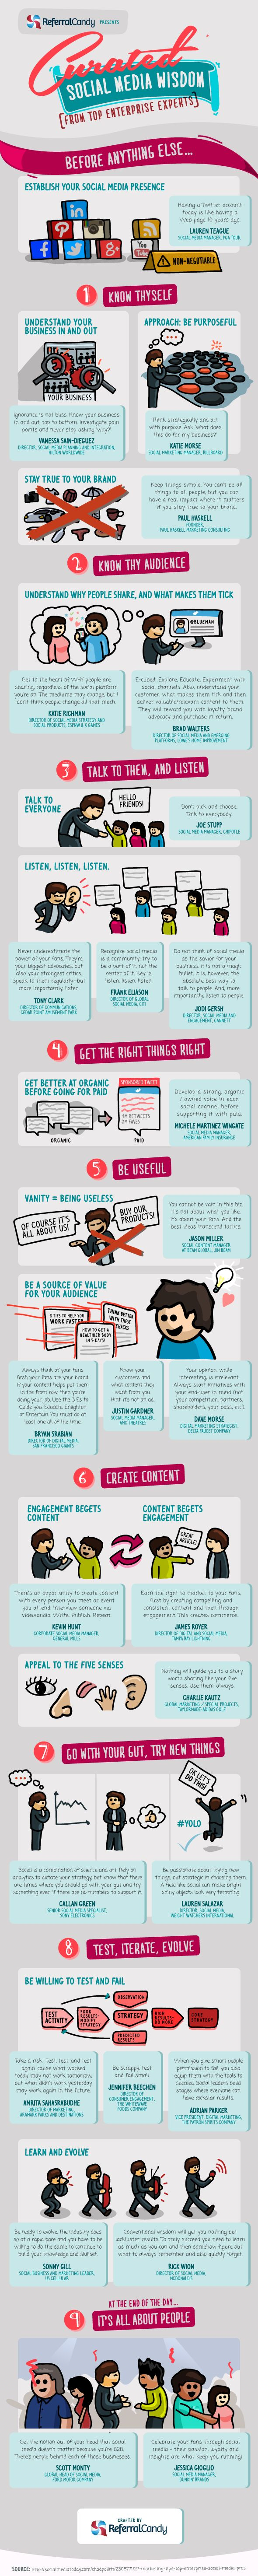 41 best tourism internet marketing images on pinterest internet curated social media wisdom from top enterprise experts infographic fandeluxe Images